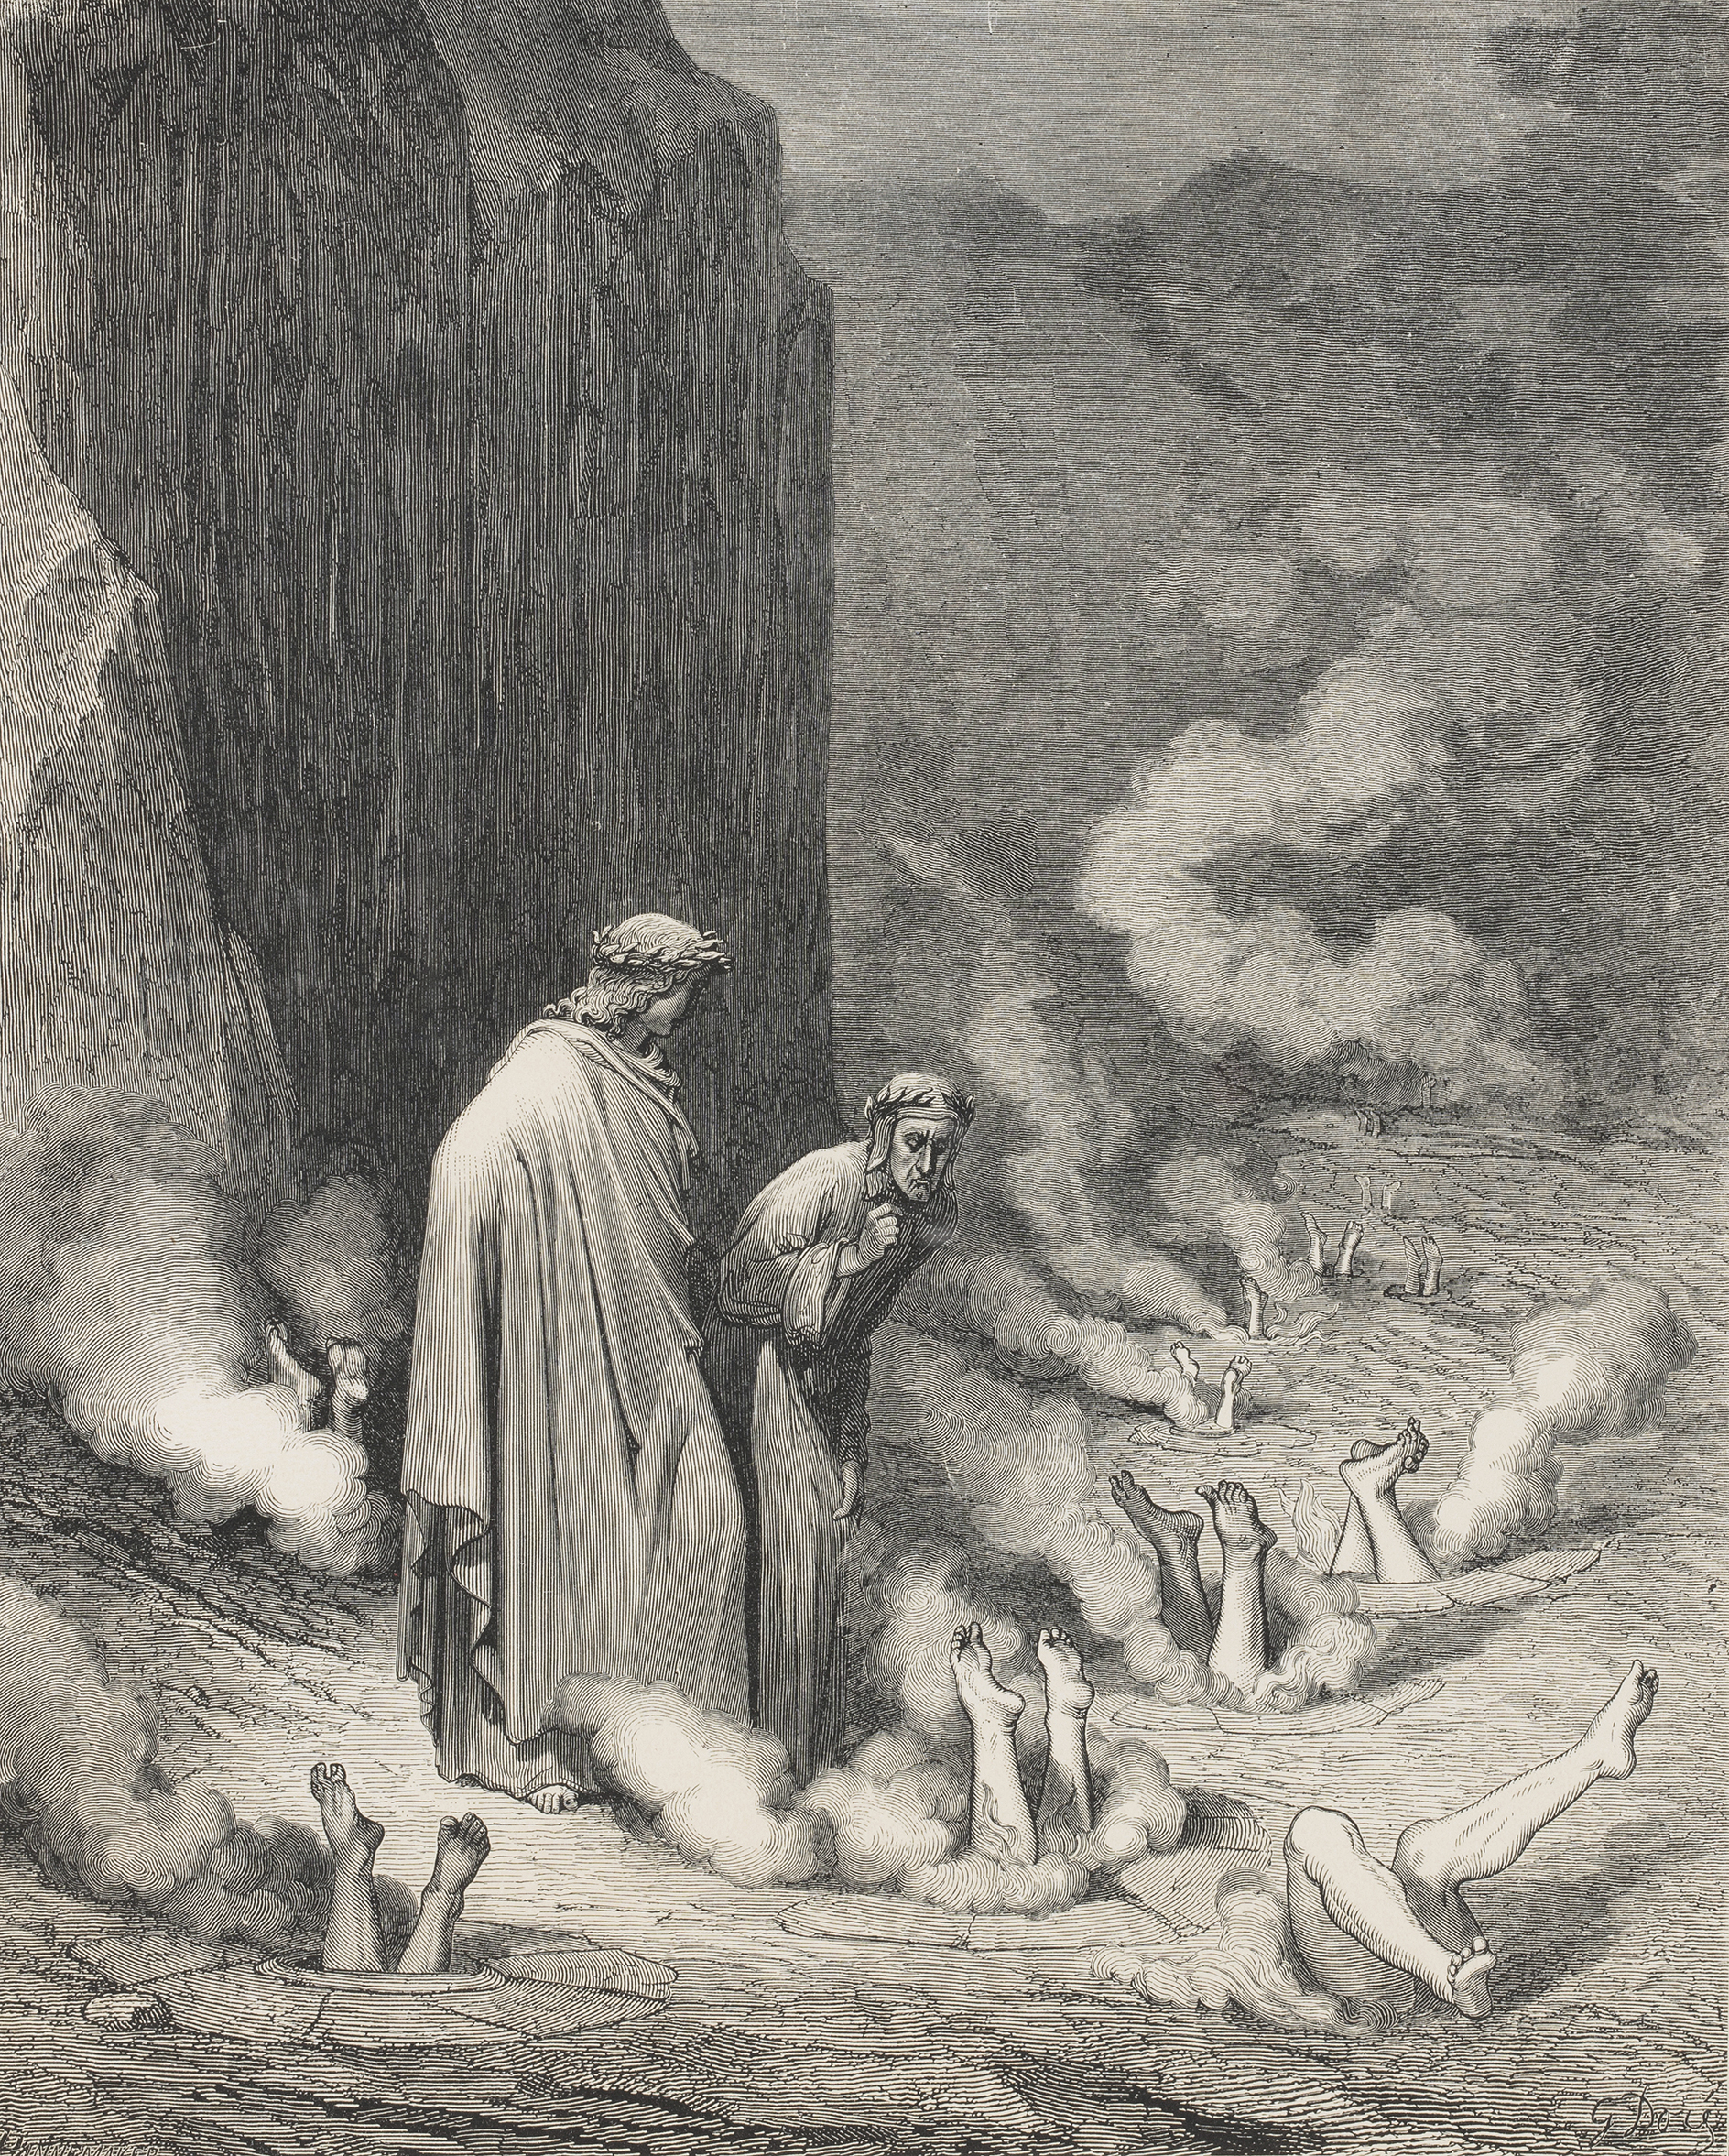 The Vision of Hell, 1868, by Dante Alighieri, illustrated by Gustave Doré